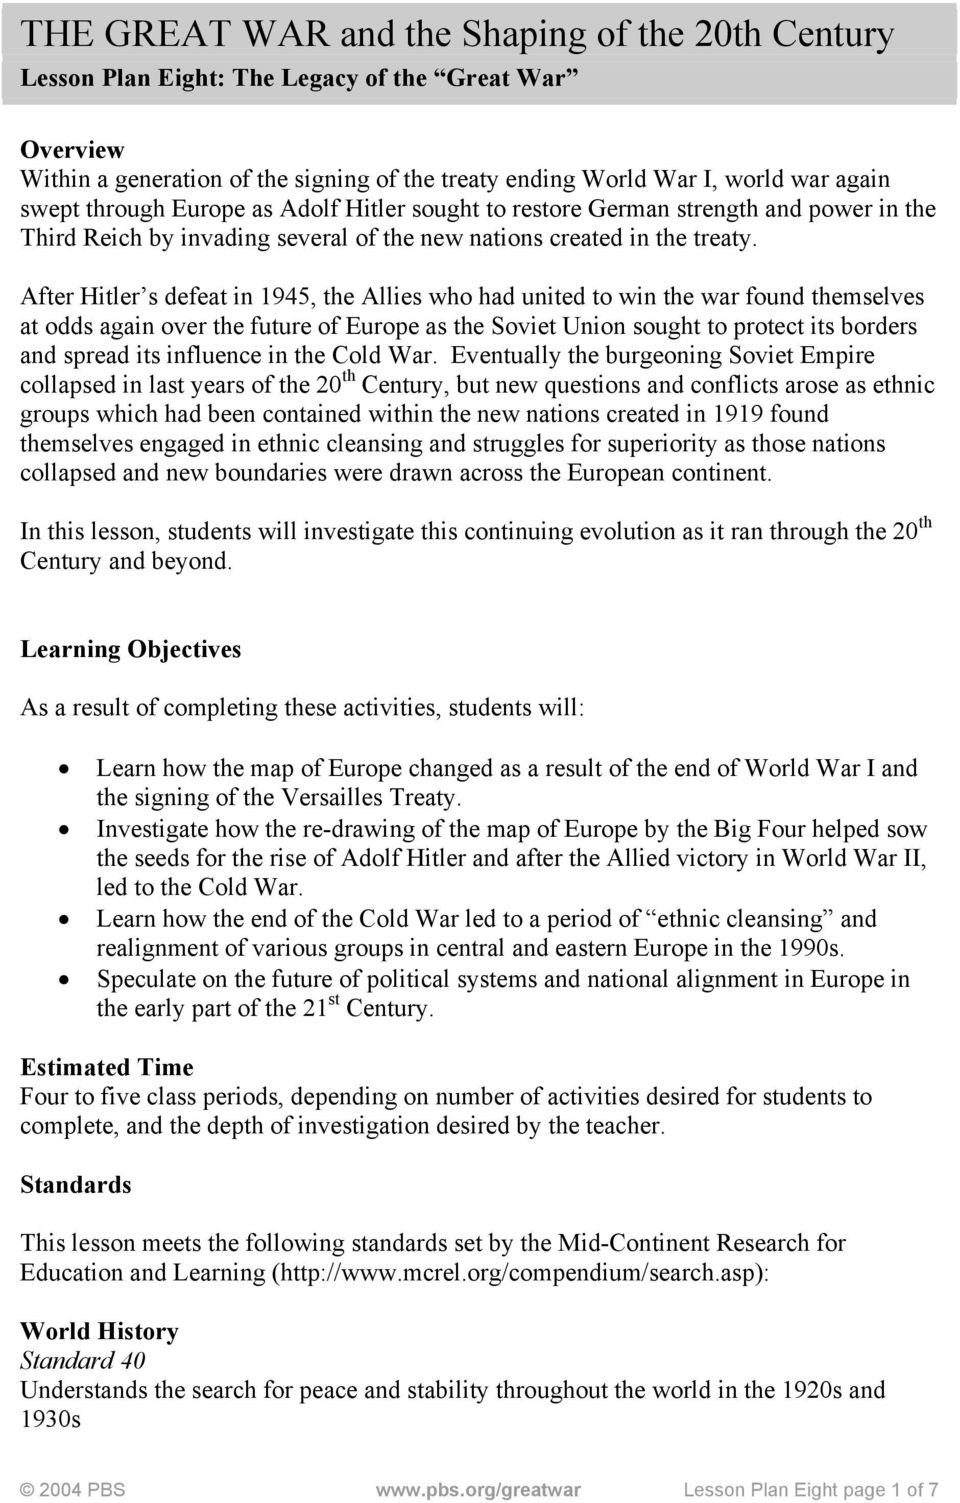 adolf hitler essay greek essay ancient greek essay oglasi ancient  the great war and the shaping of the th century pdf after hitler s defeat in comparative essay conclusions